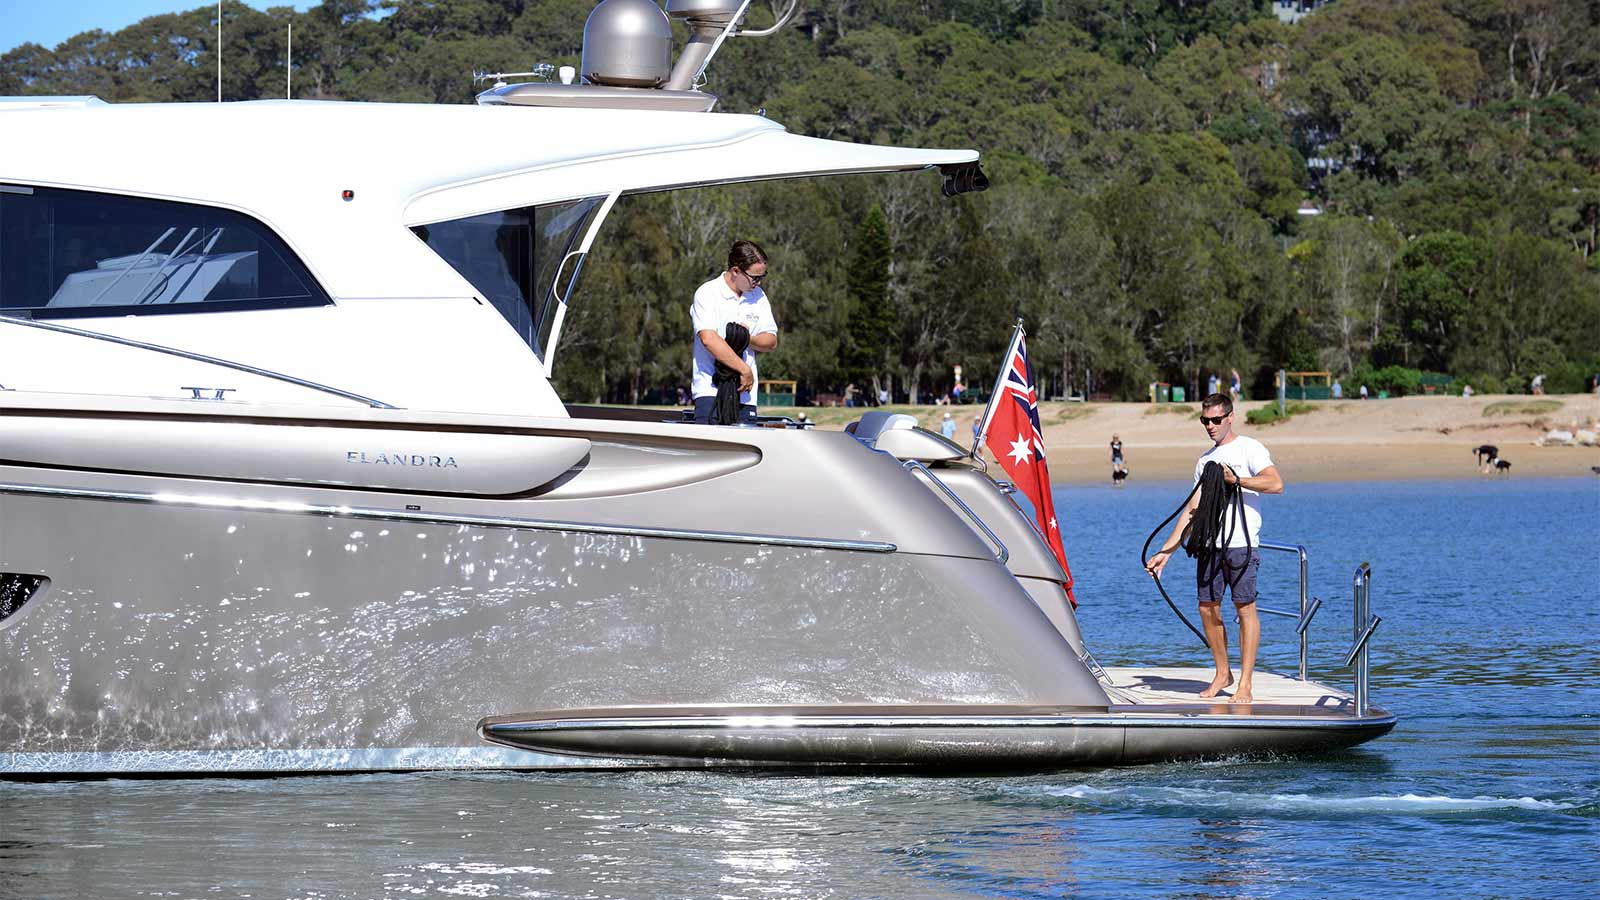 We offer skippering services for your luxury yacht so you can have a relaxing day on the water